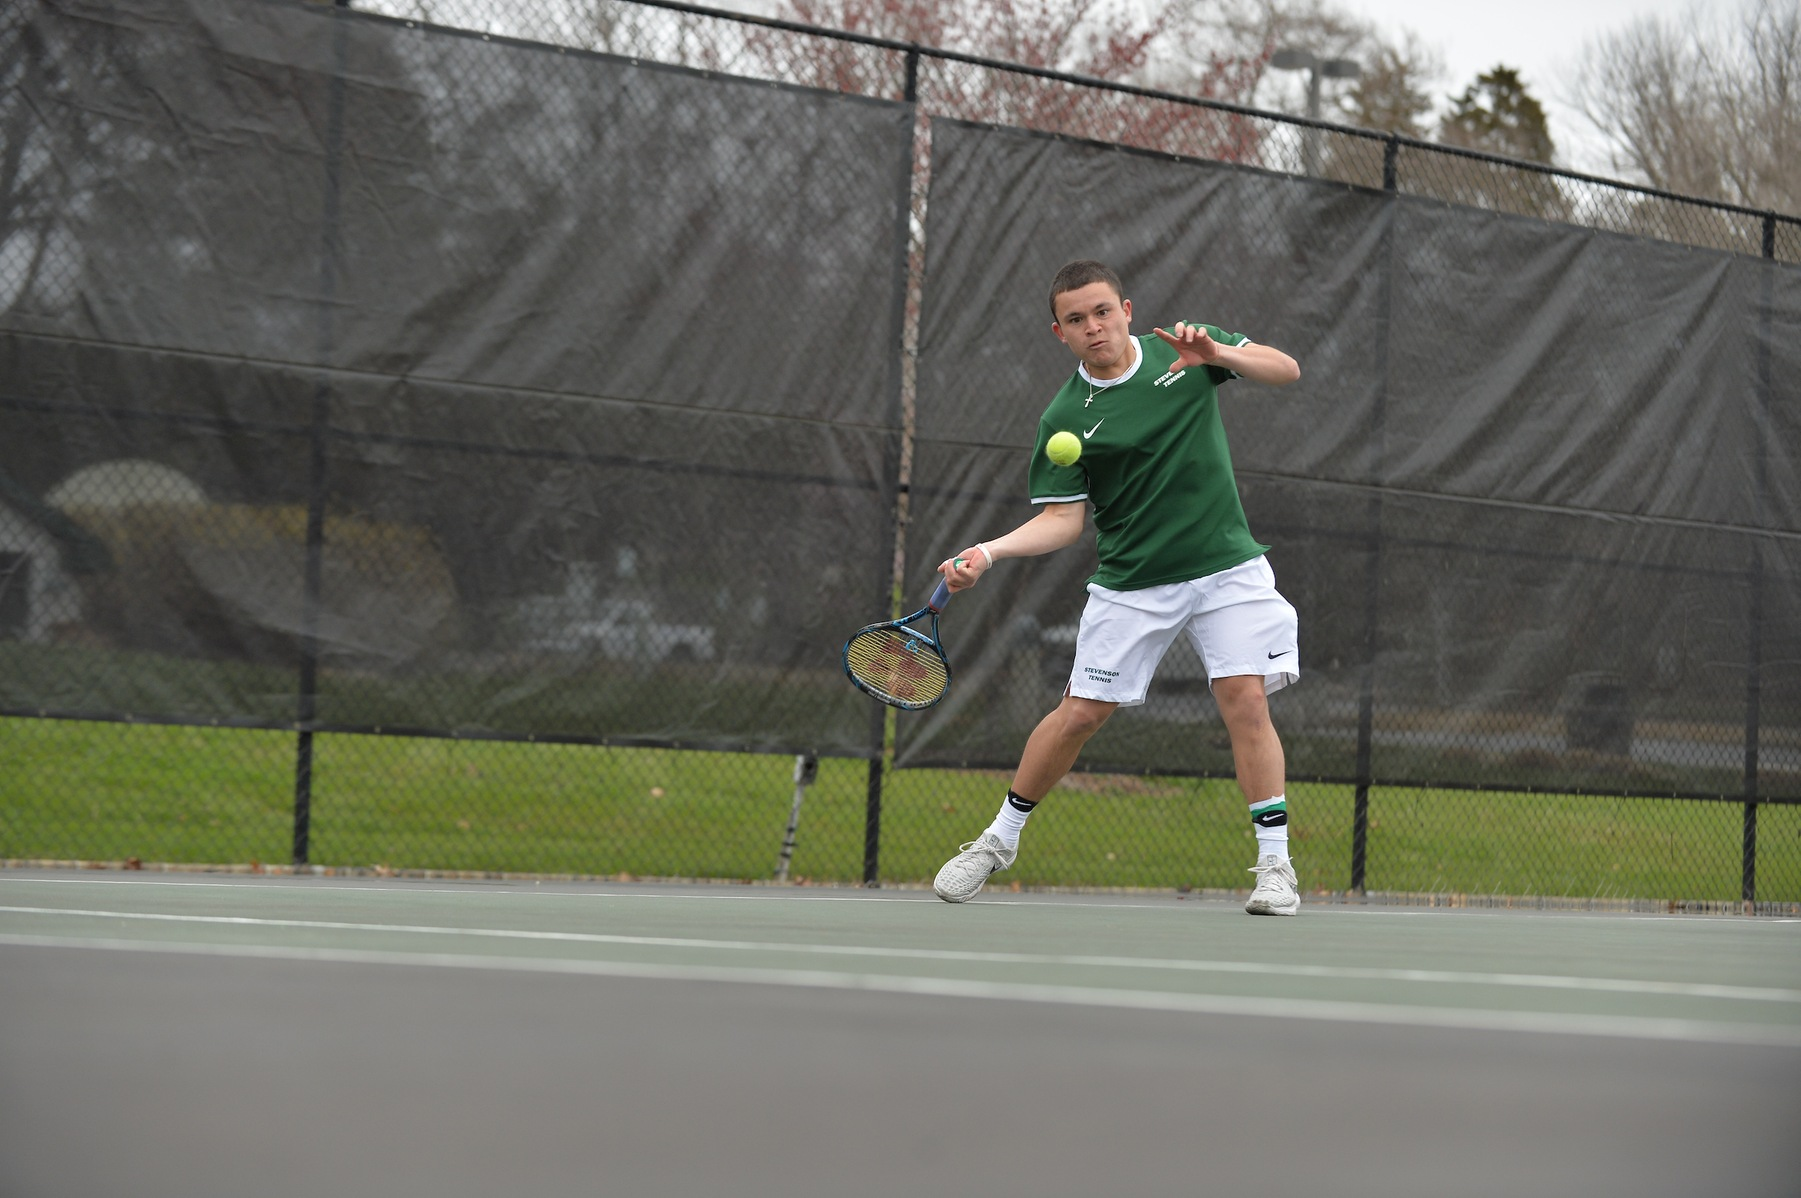 Both Sturniolo and Ryan Win 10th Straight in Singles, Mustangs Overtake Shenandoah